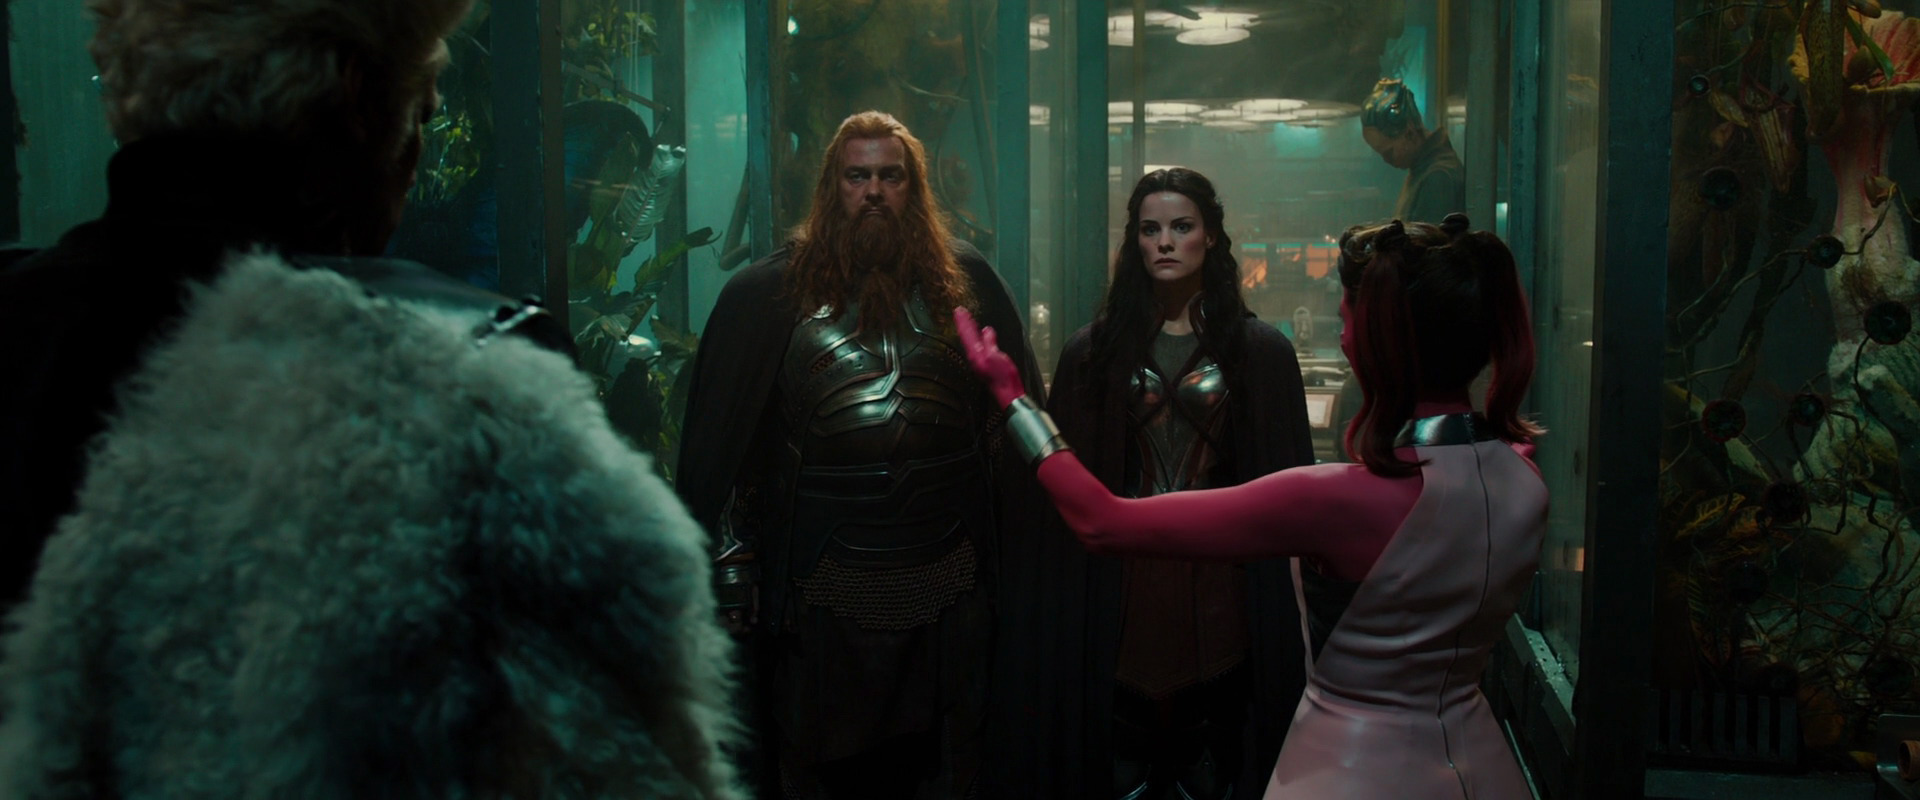 image - thor-dark-world-movie-screencaps com-12122 | marvel